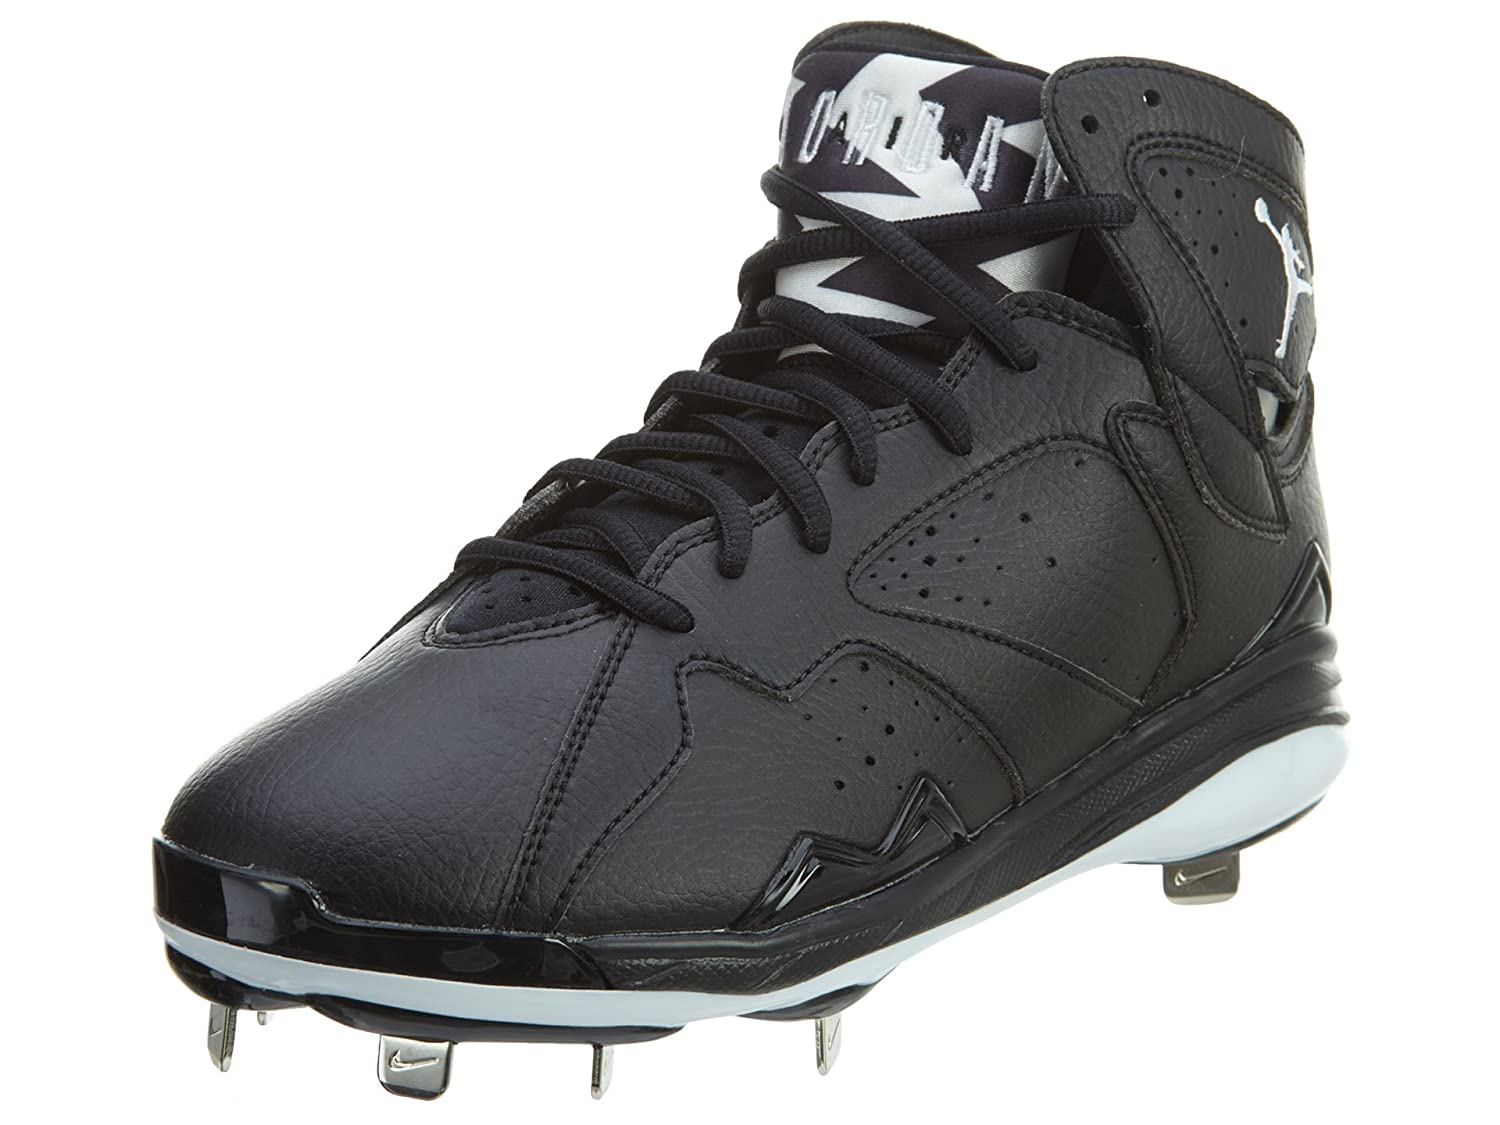 Nike Air Jordan 7 Retro Metal Baseball Cleats  Amazon.co.uk  Shoes   Bags 68f1bc3c70